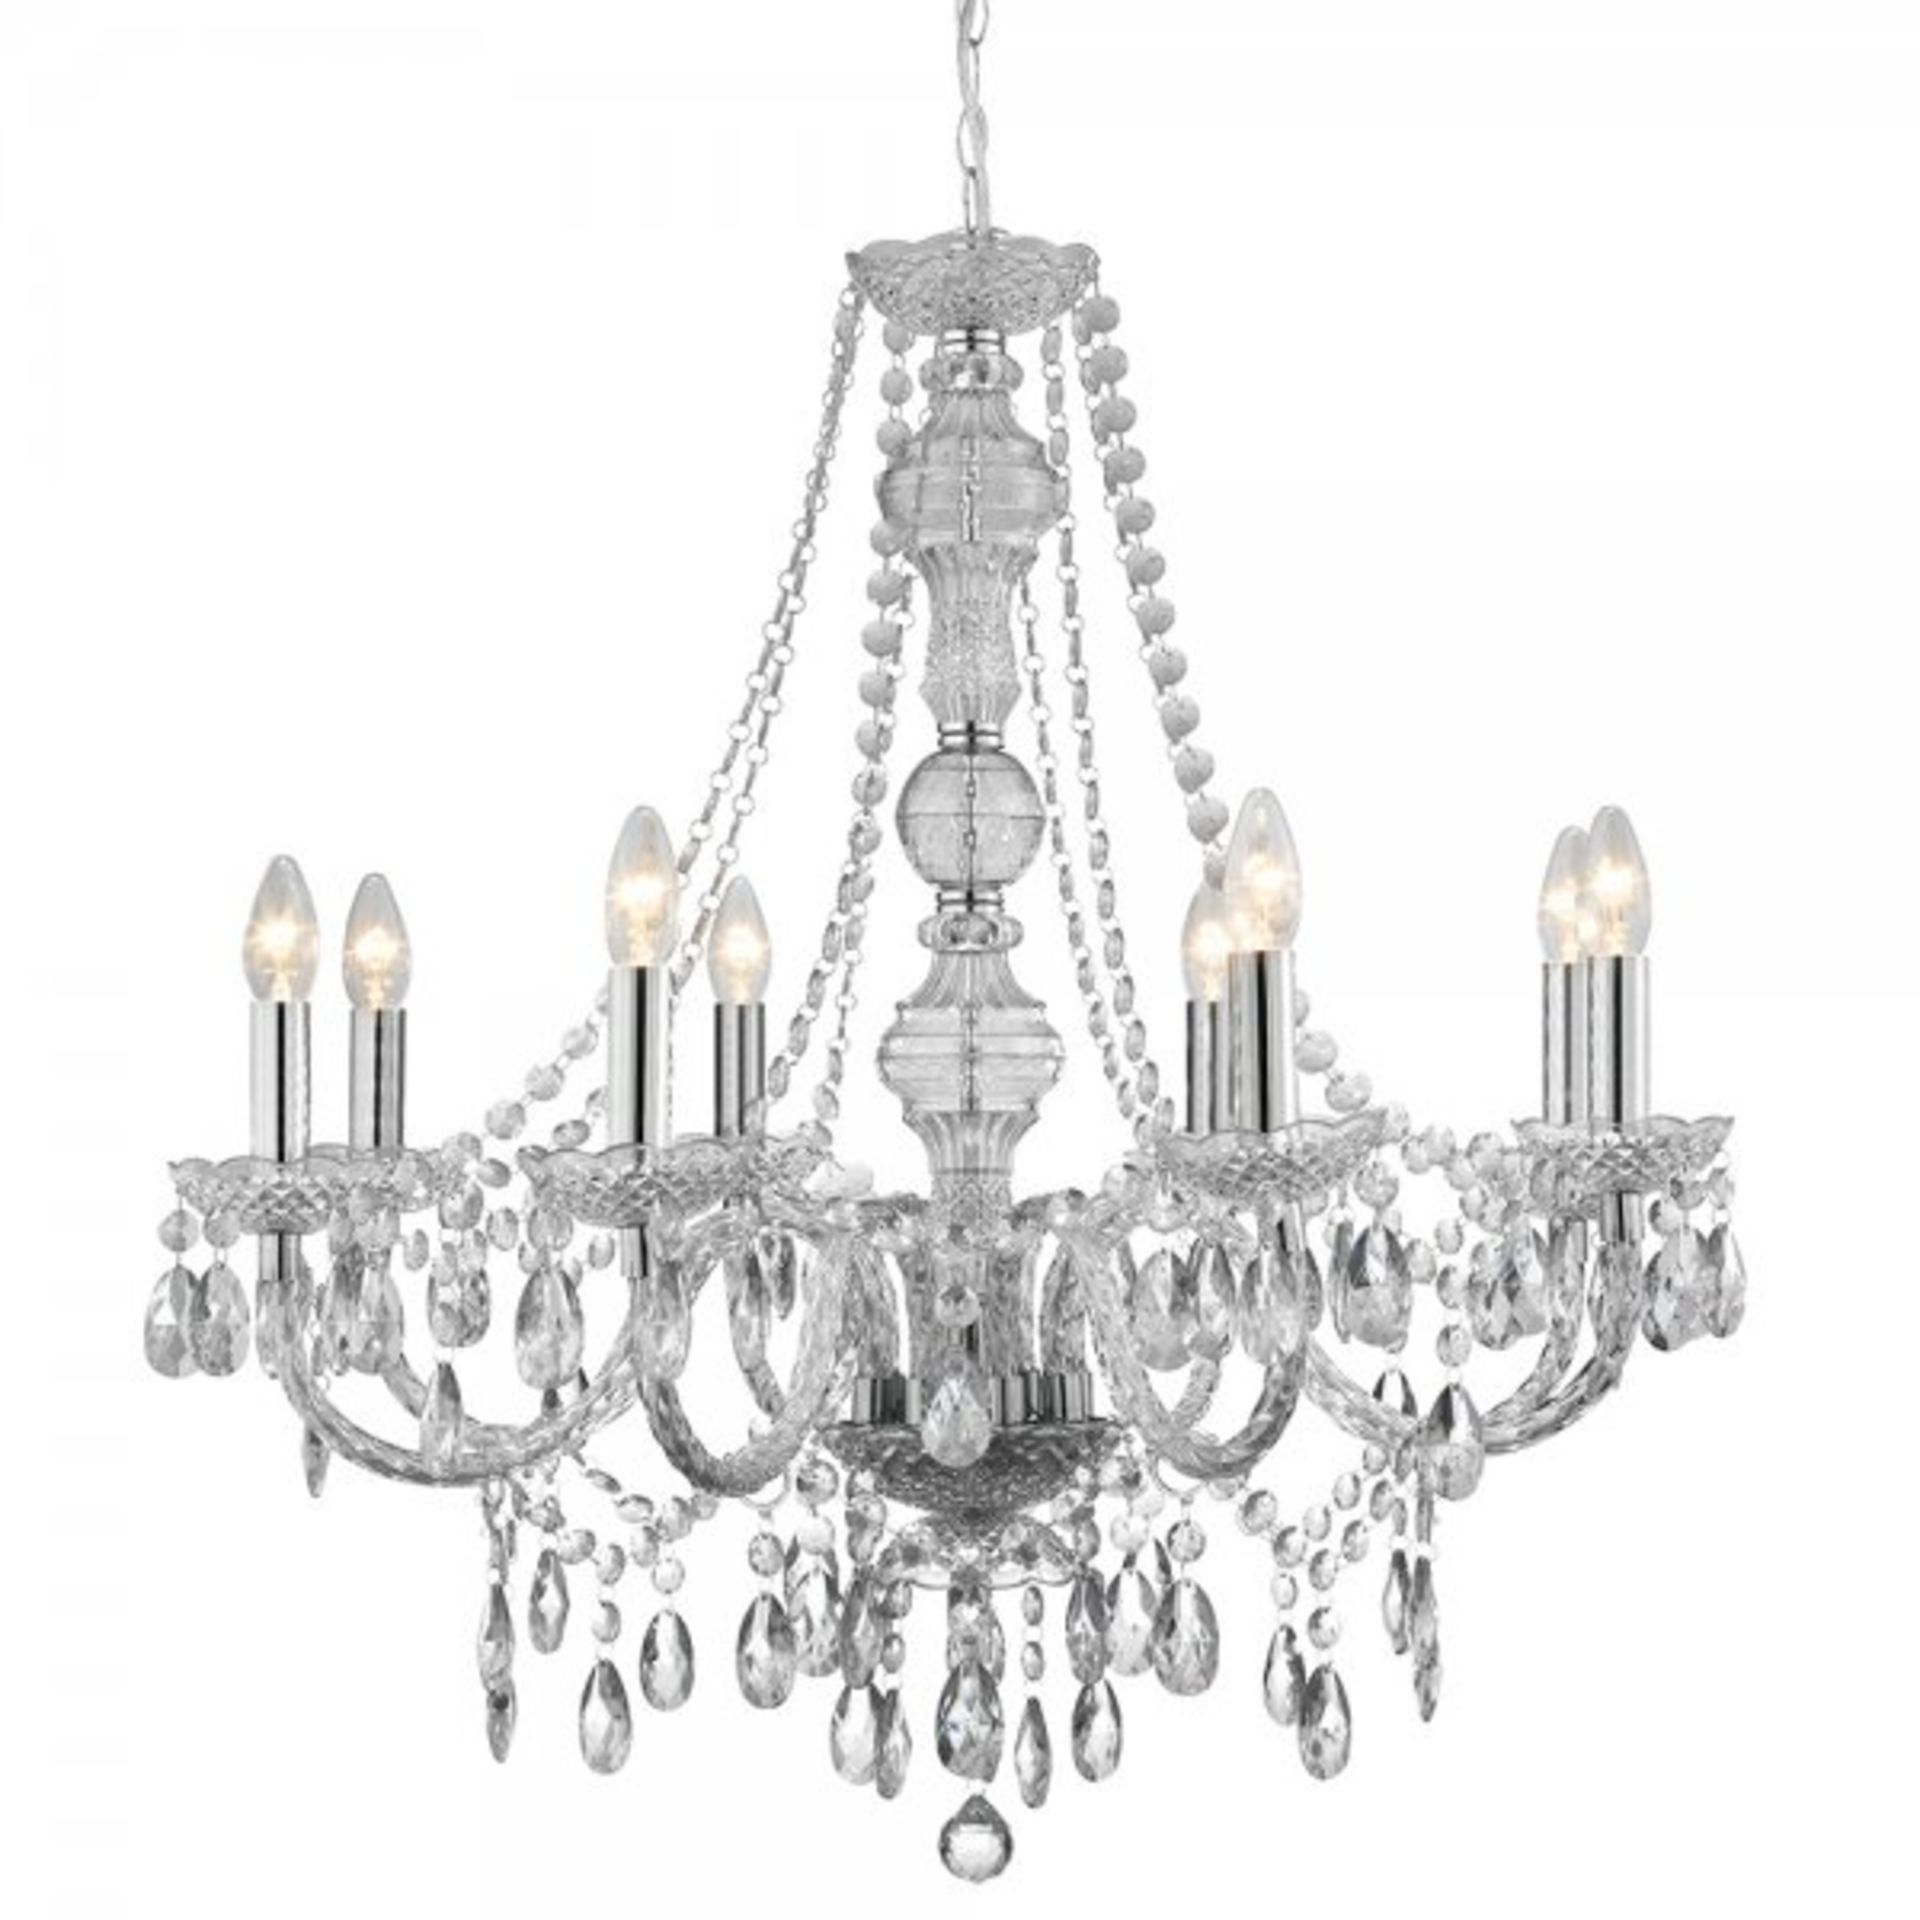 Lot 9138 - 1 x Searchlight Marie Therese Chandelier - Chrome Finish With Clear Trimmings - Product Code 8888-